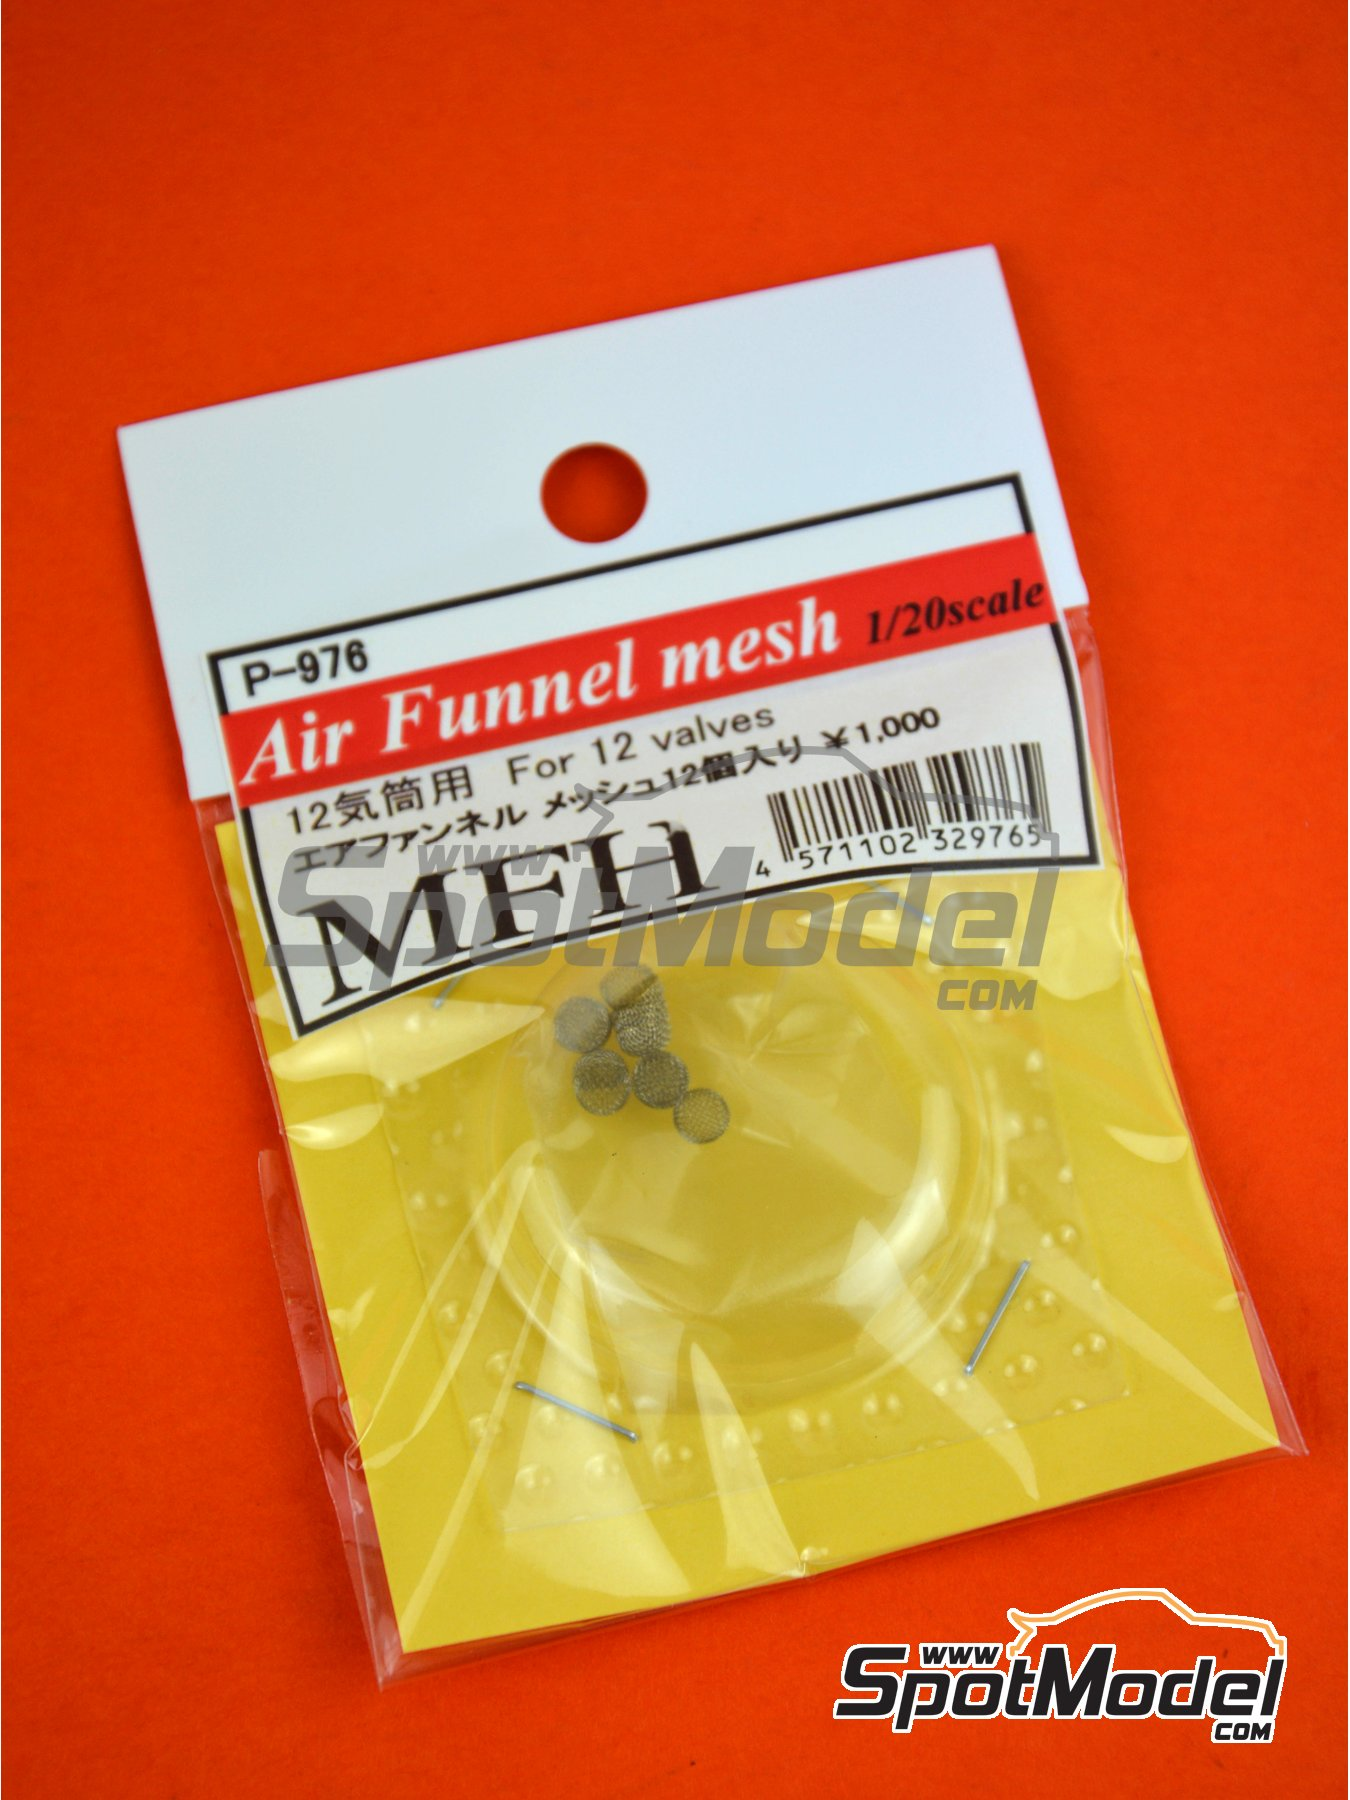 Air Funnel Mesh for Ford DFV engines | Air funnel in 1/20 scale manufactured by Model Factory Hiro (ref. MFH-P976) image